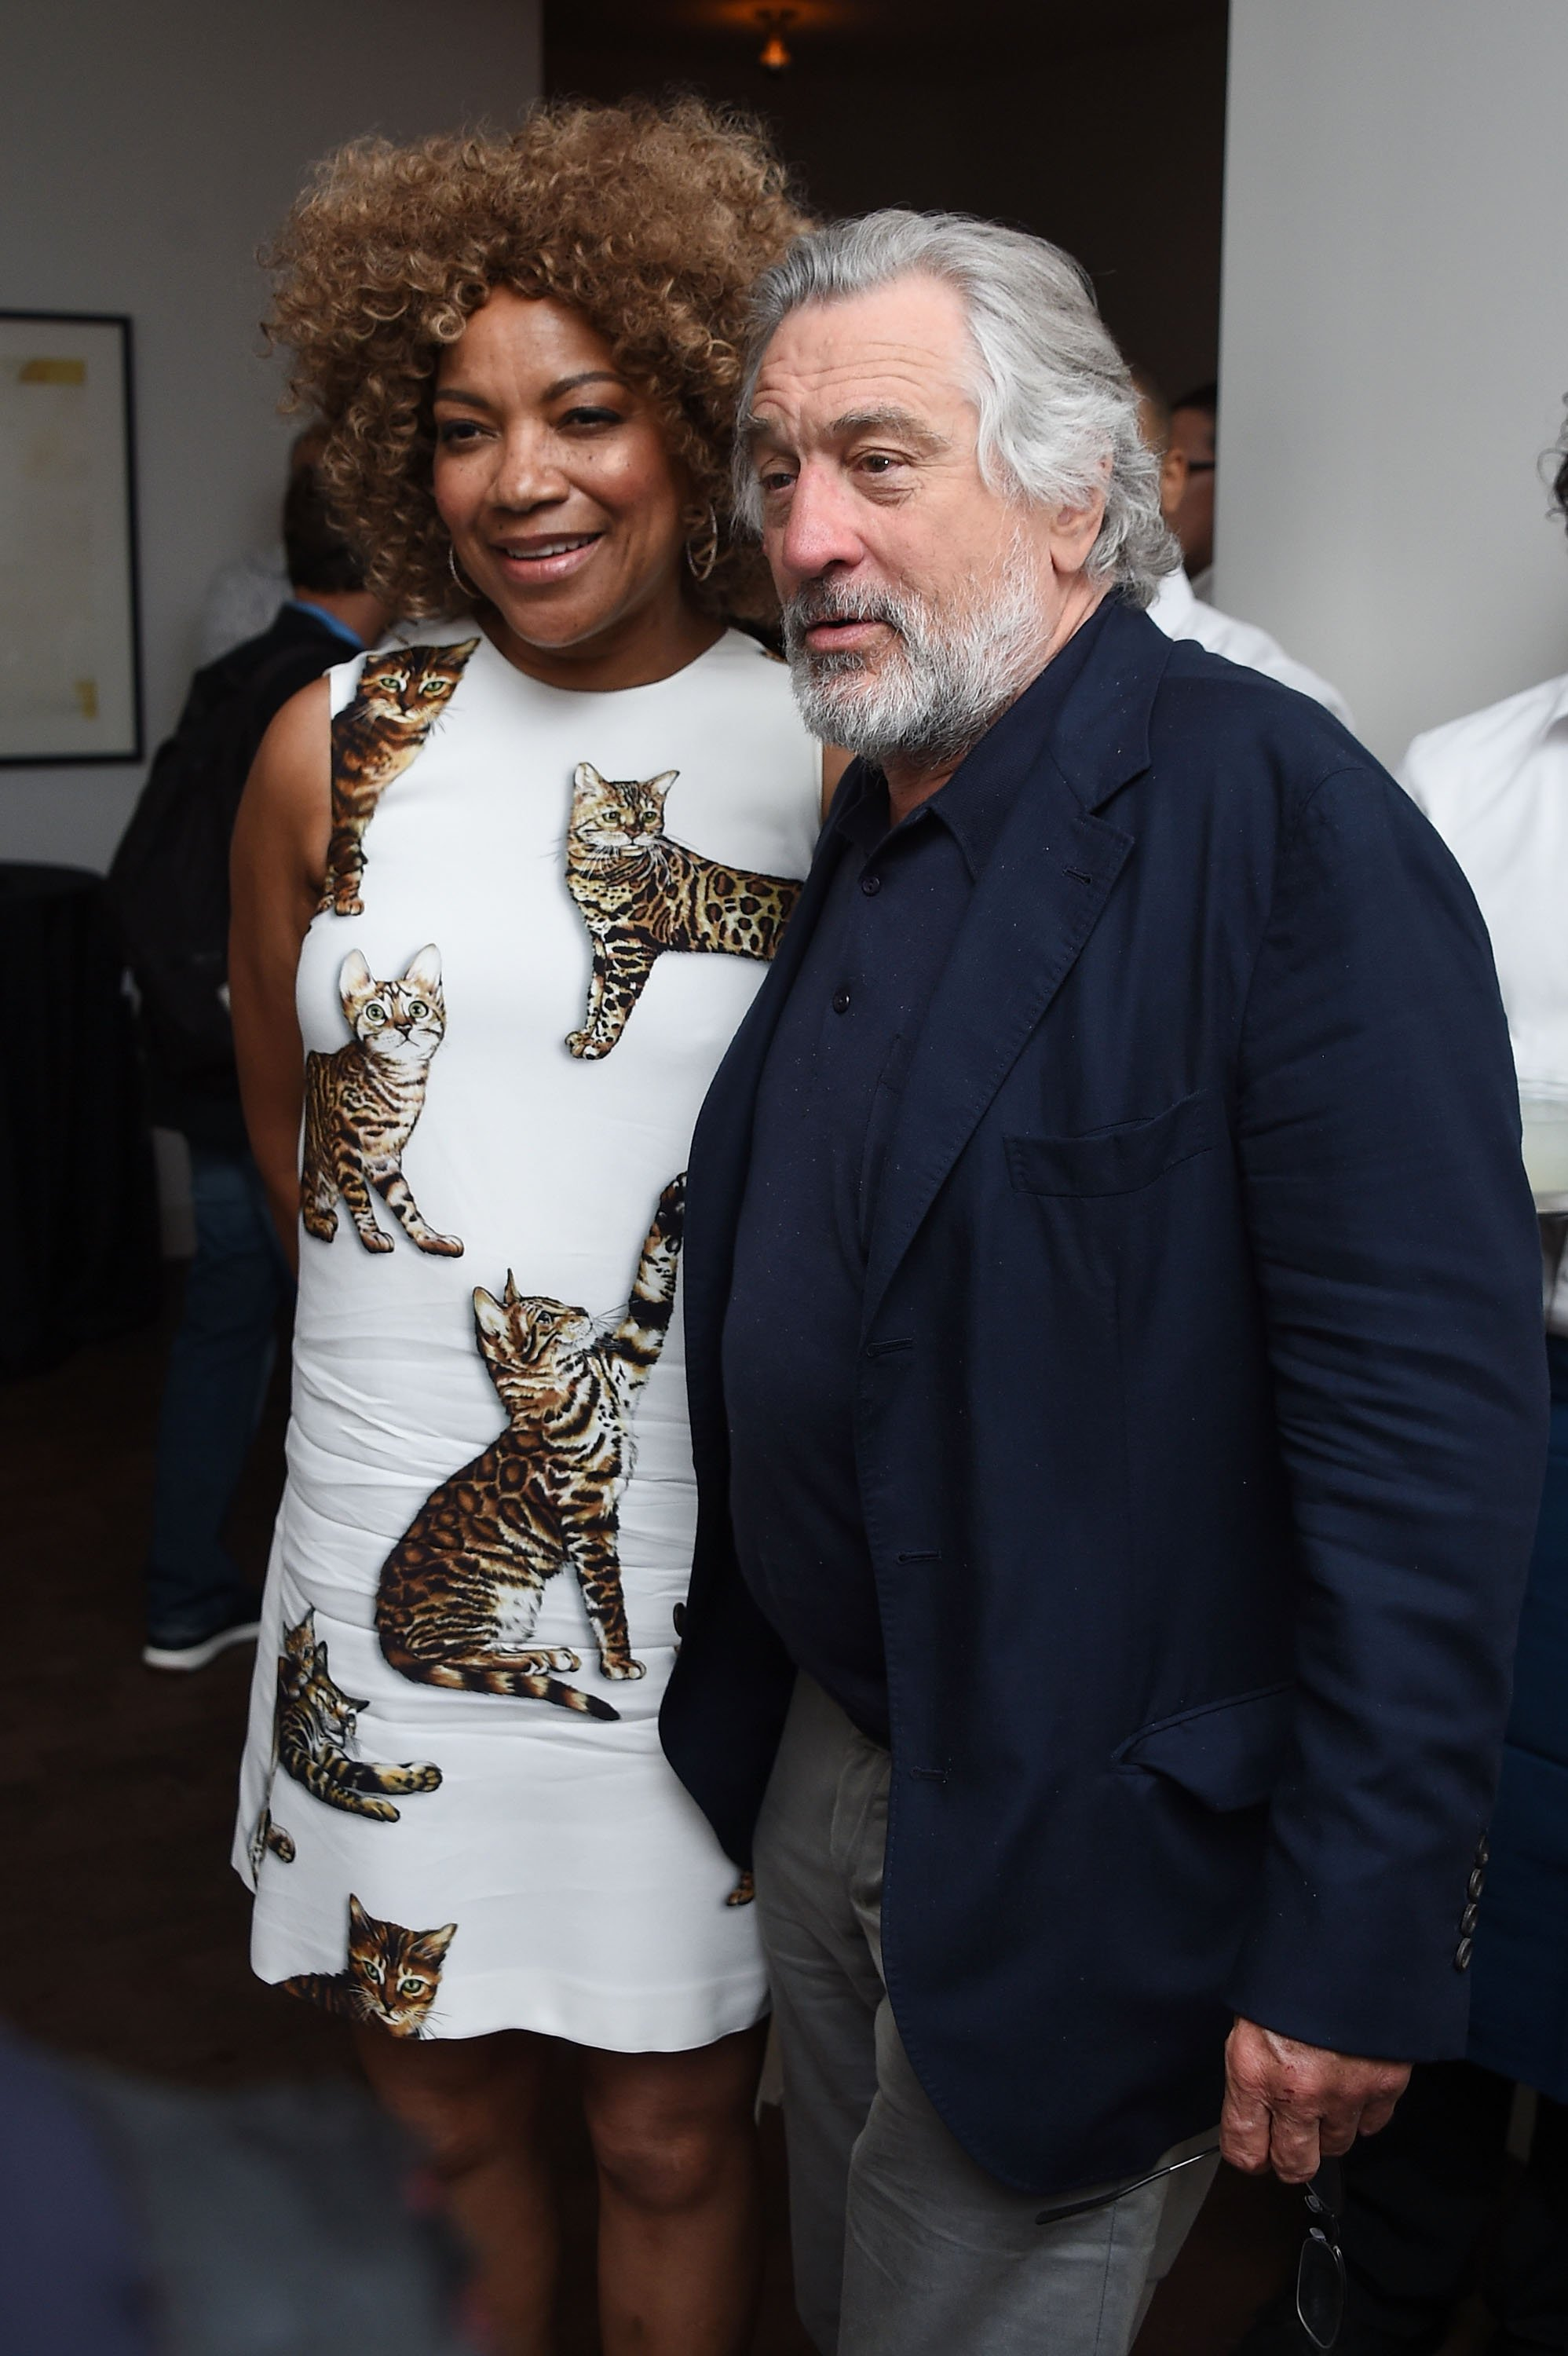 """Grace Hightower and Robert De Niro attend the """"Hands Of Stone"""" U.S. premiere after party at The Redbury New York on August 22, 2016, in New York City. 